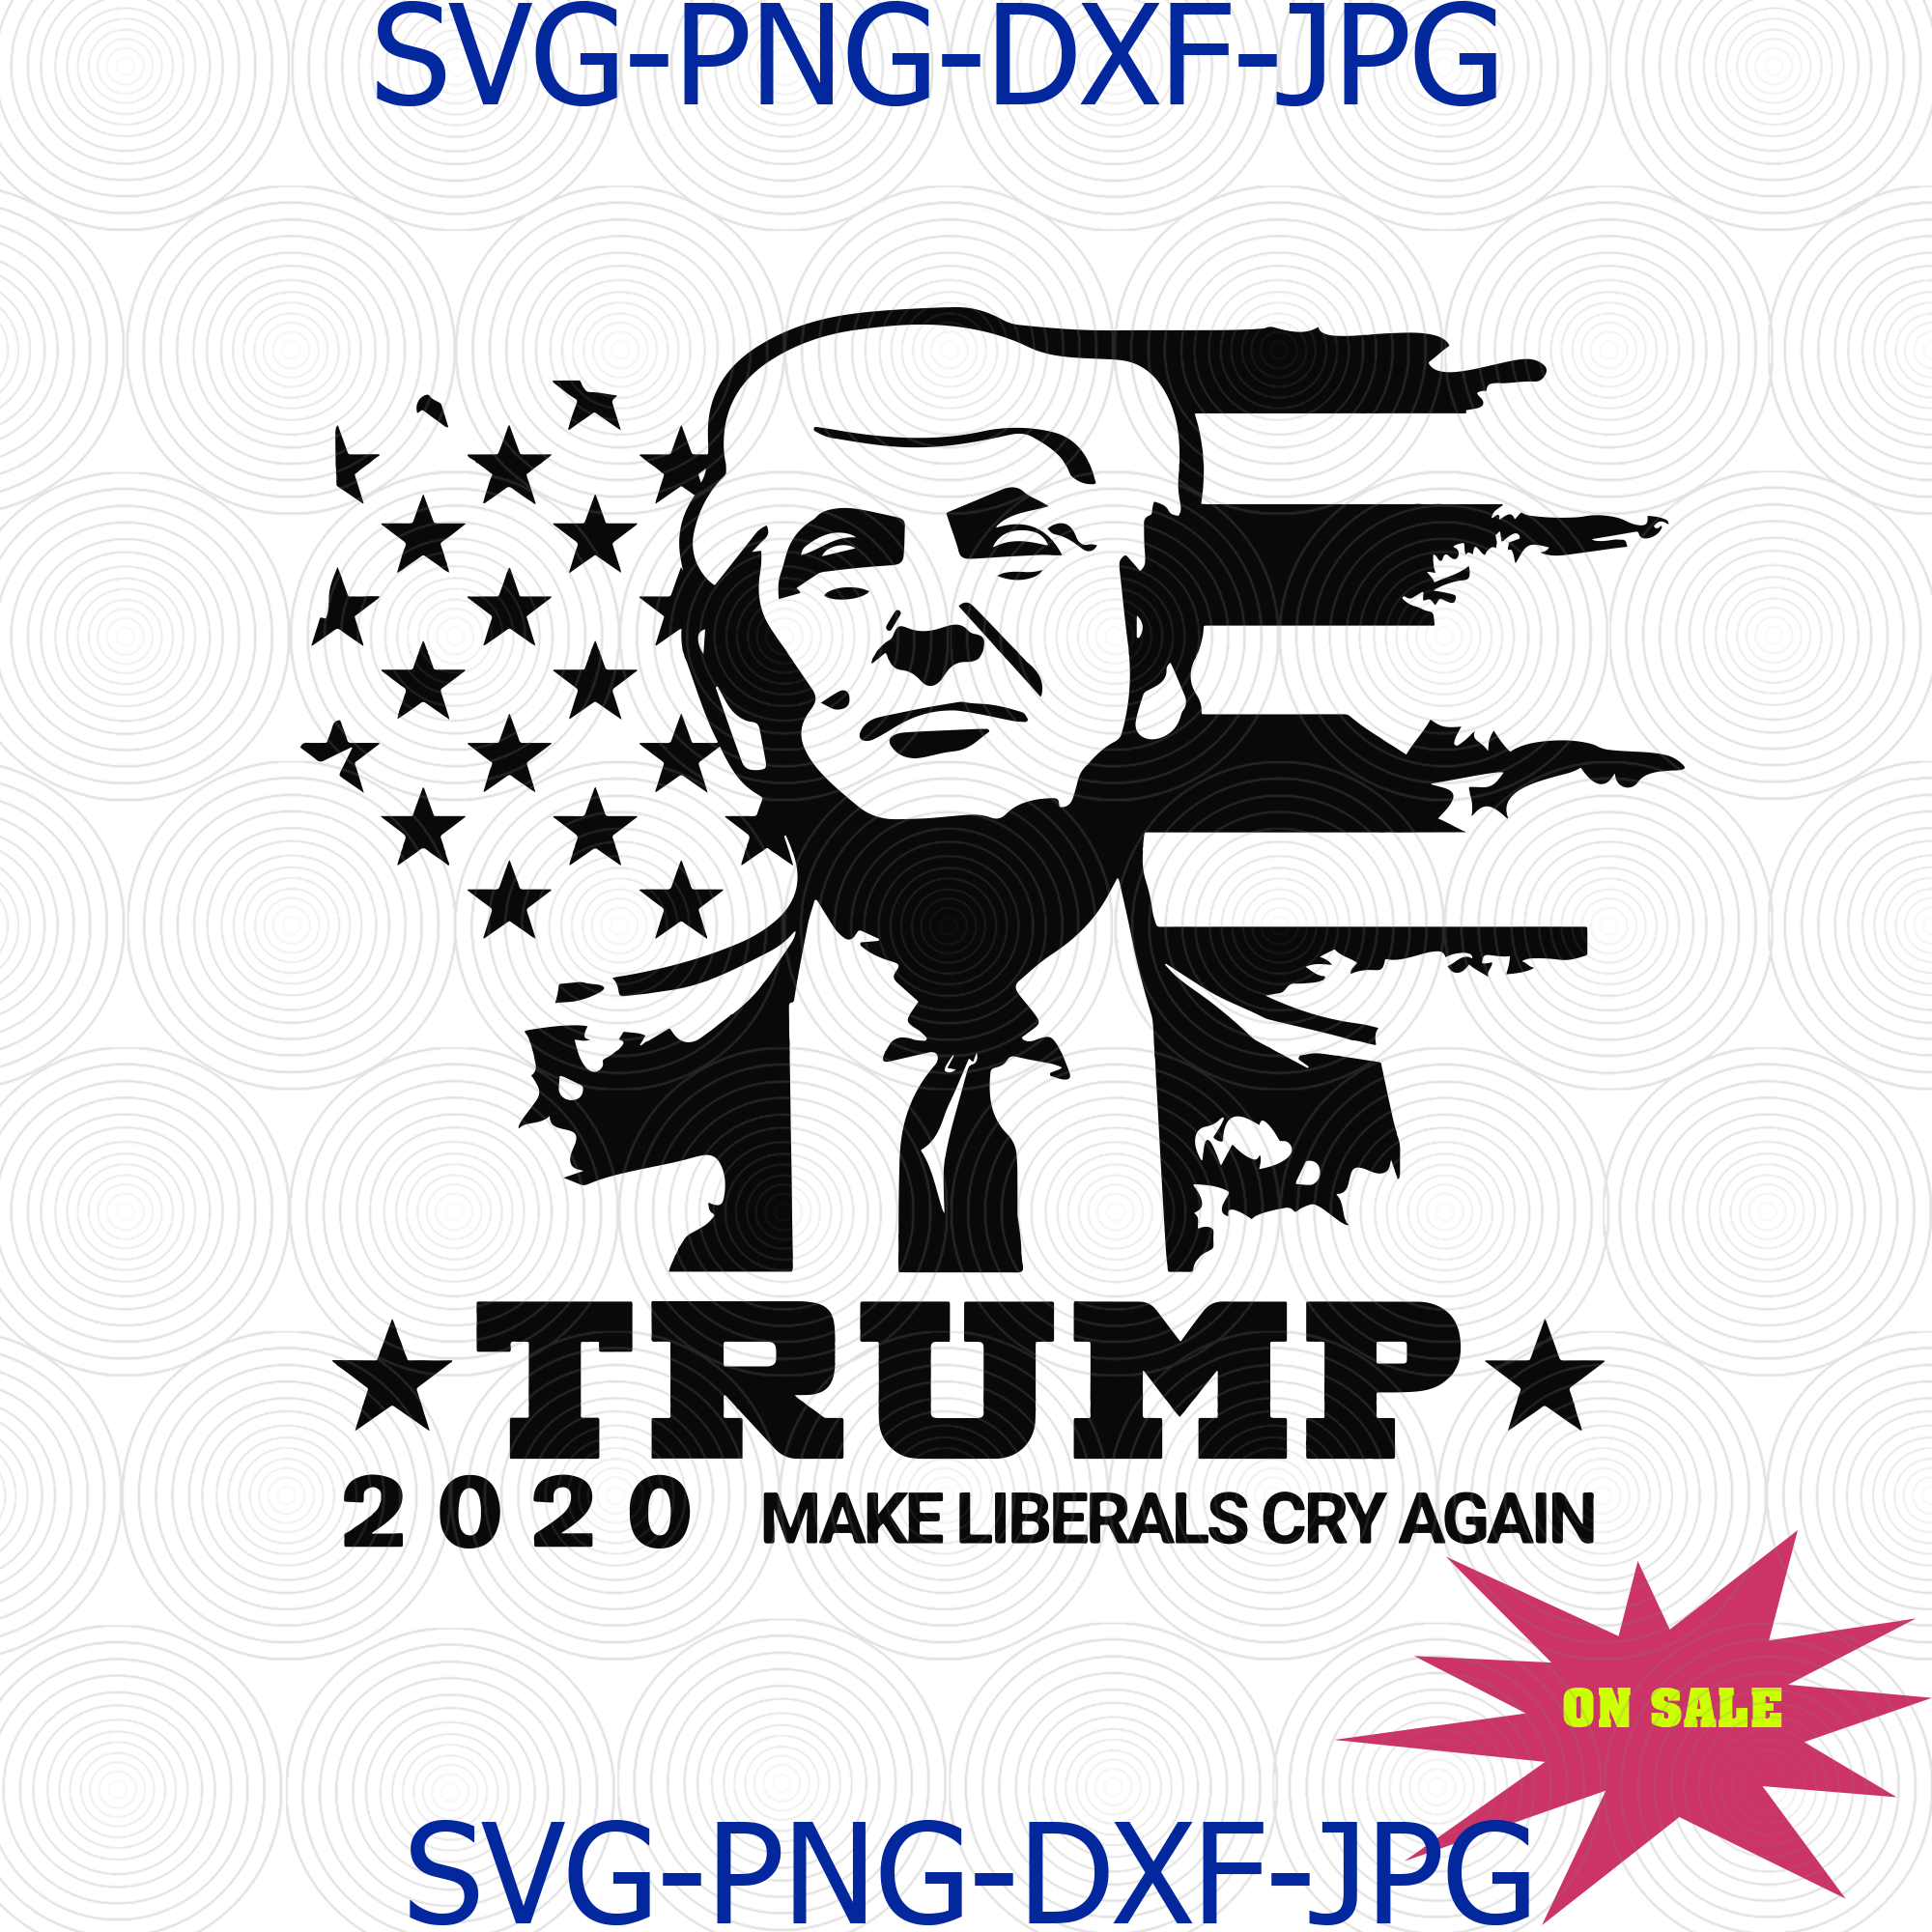 Trump 2020 Svg Make Liberals Cry Again American Flag Svg Design Election 2020 Distressed Vintage Silhouette Cameo Svg Cutting File Png A C Moore Marketplace